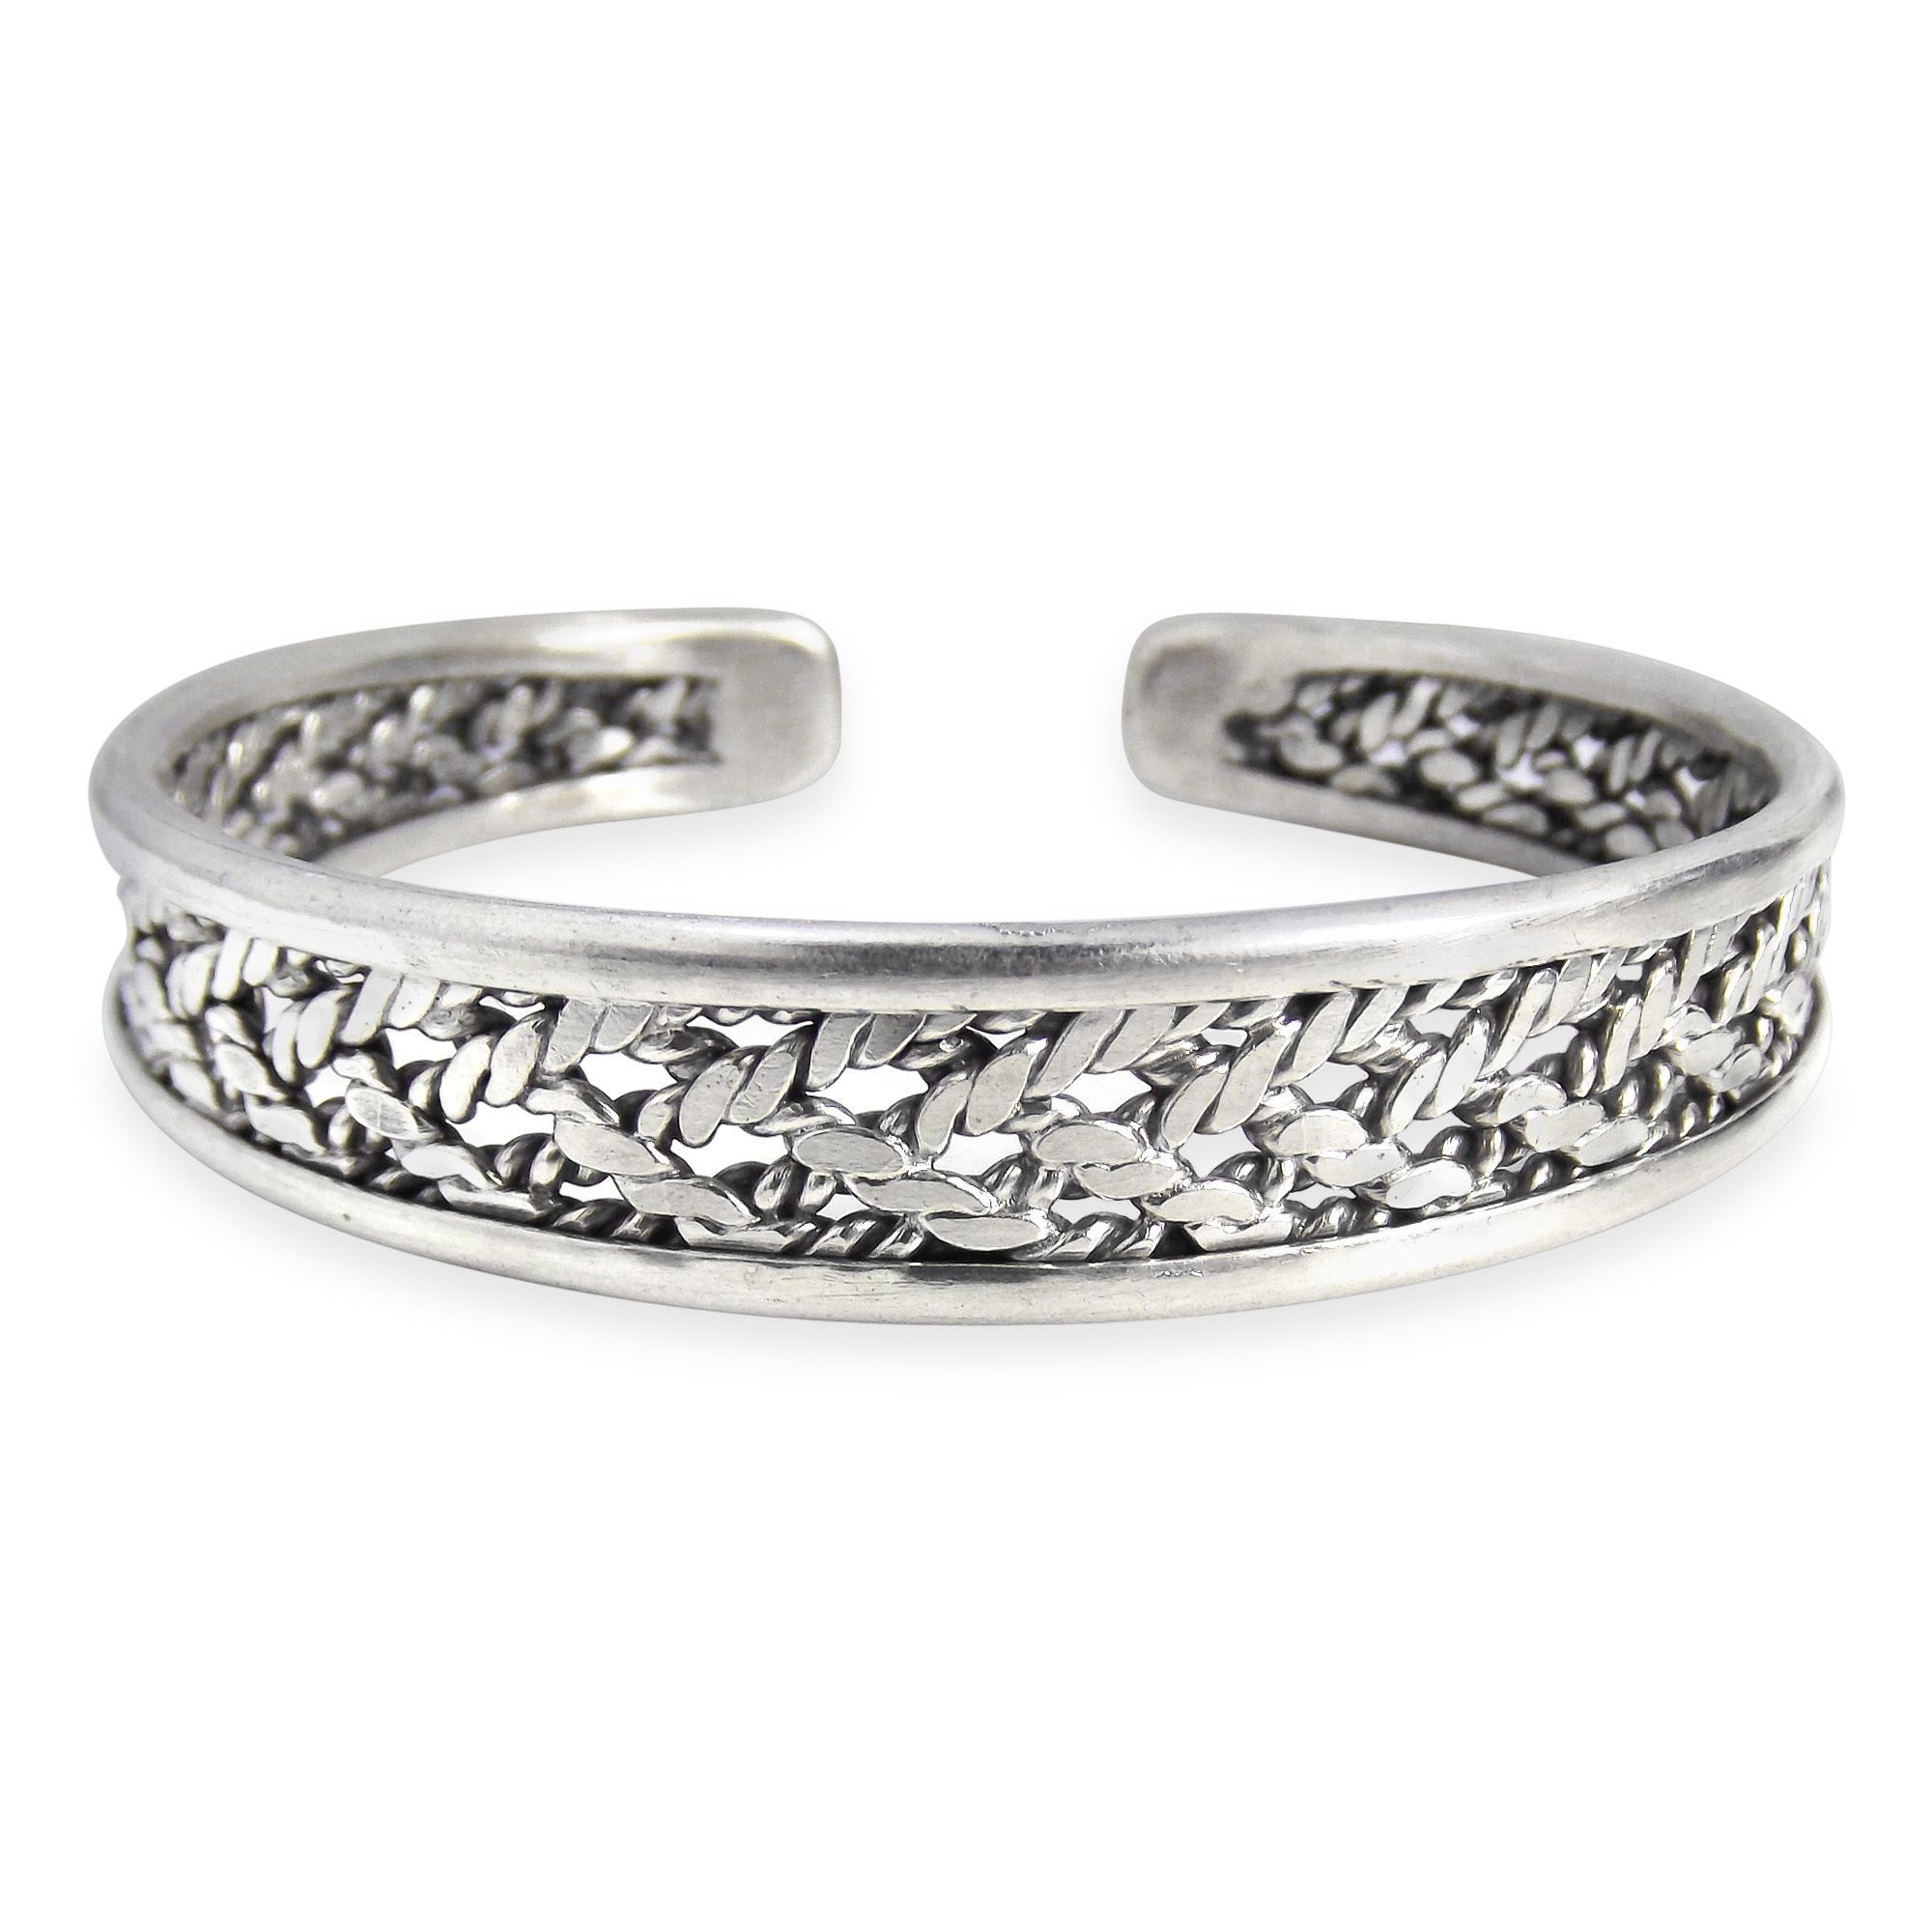 ko silver for jewelry jewellery thekojewelleryshop online shopping bracelet pure google